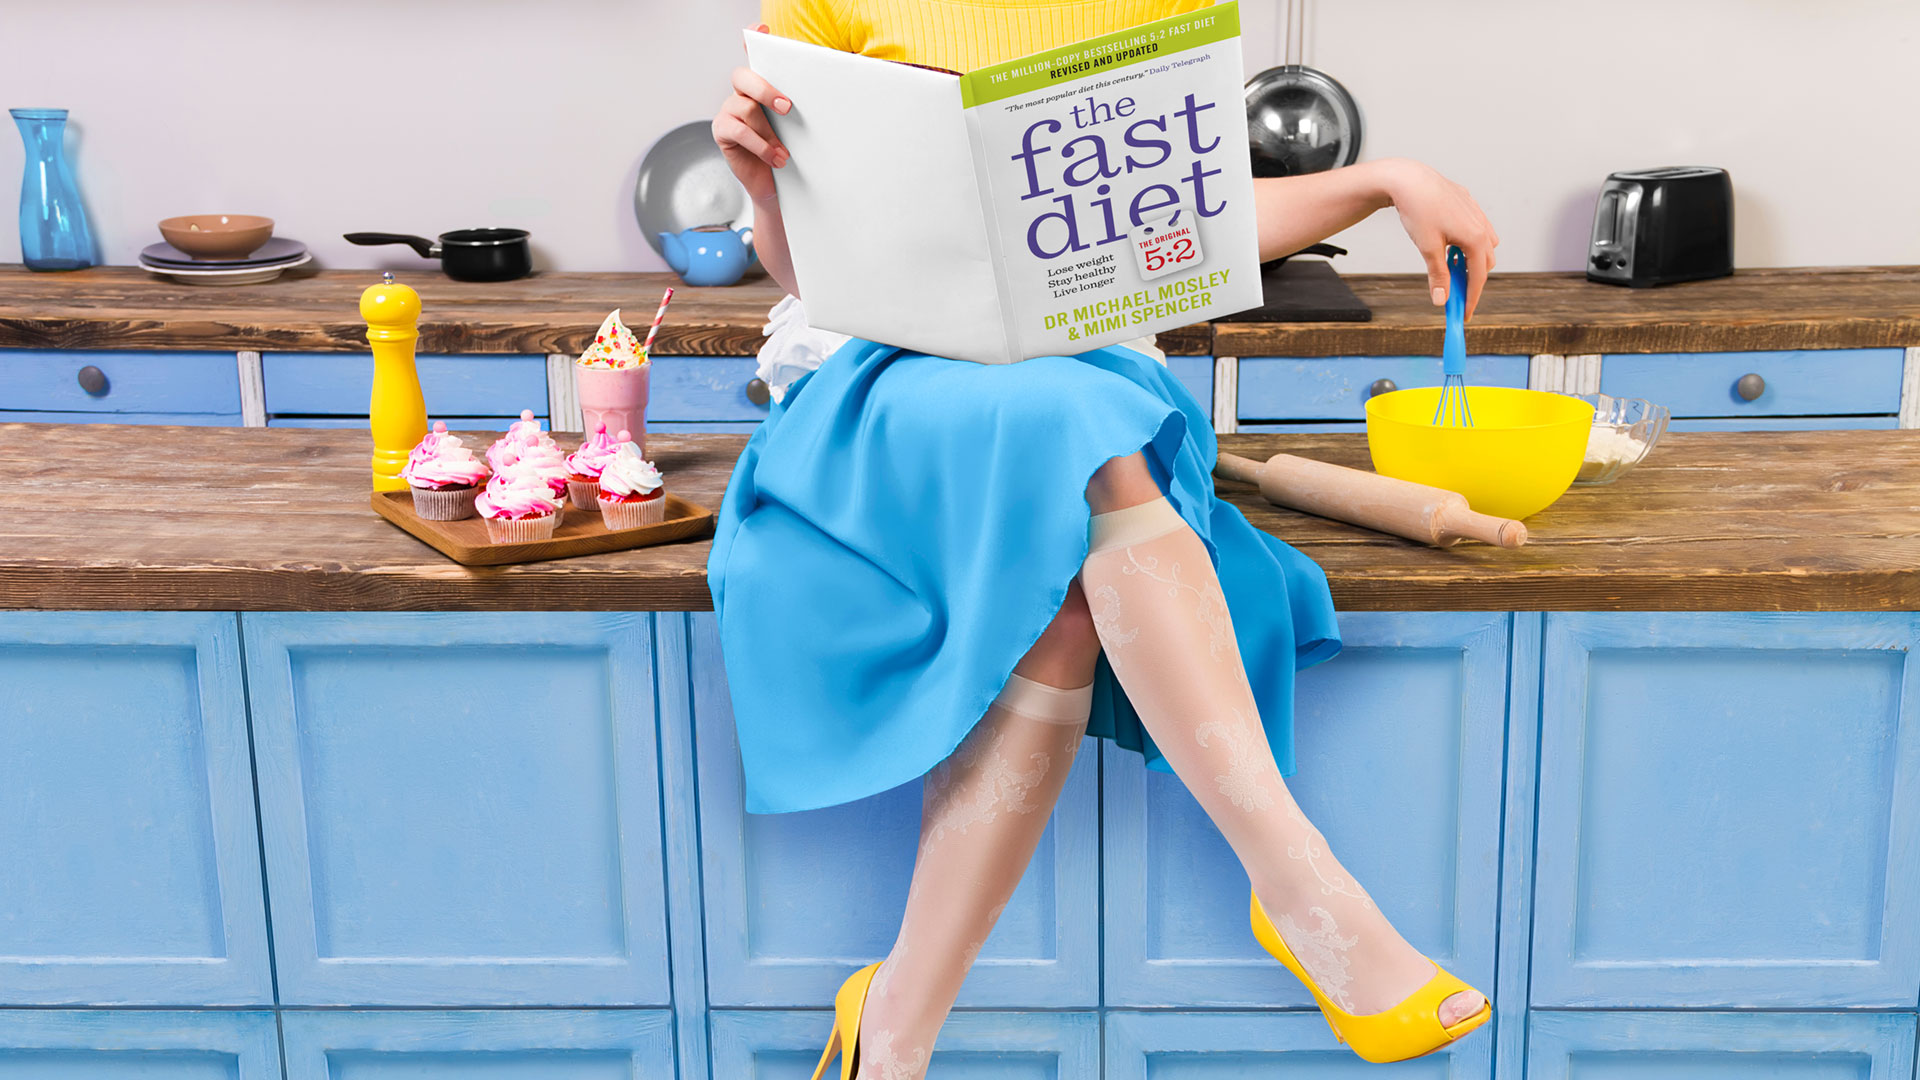 Retro woman wearing yellow top, skirt and white apron sitting on kitchen counter and reading the fast diet book. Sweet food cupcakes and milkshake home cooked on the table